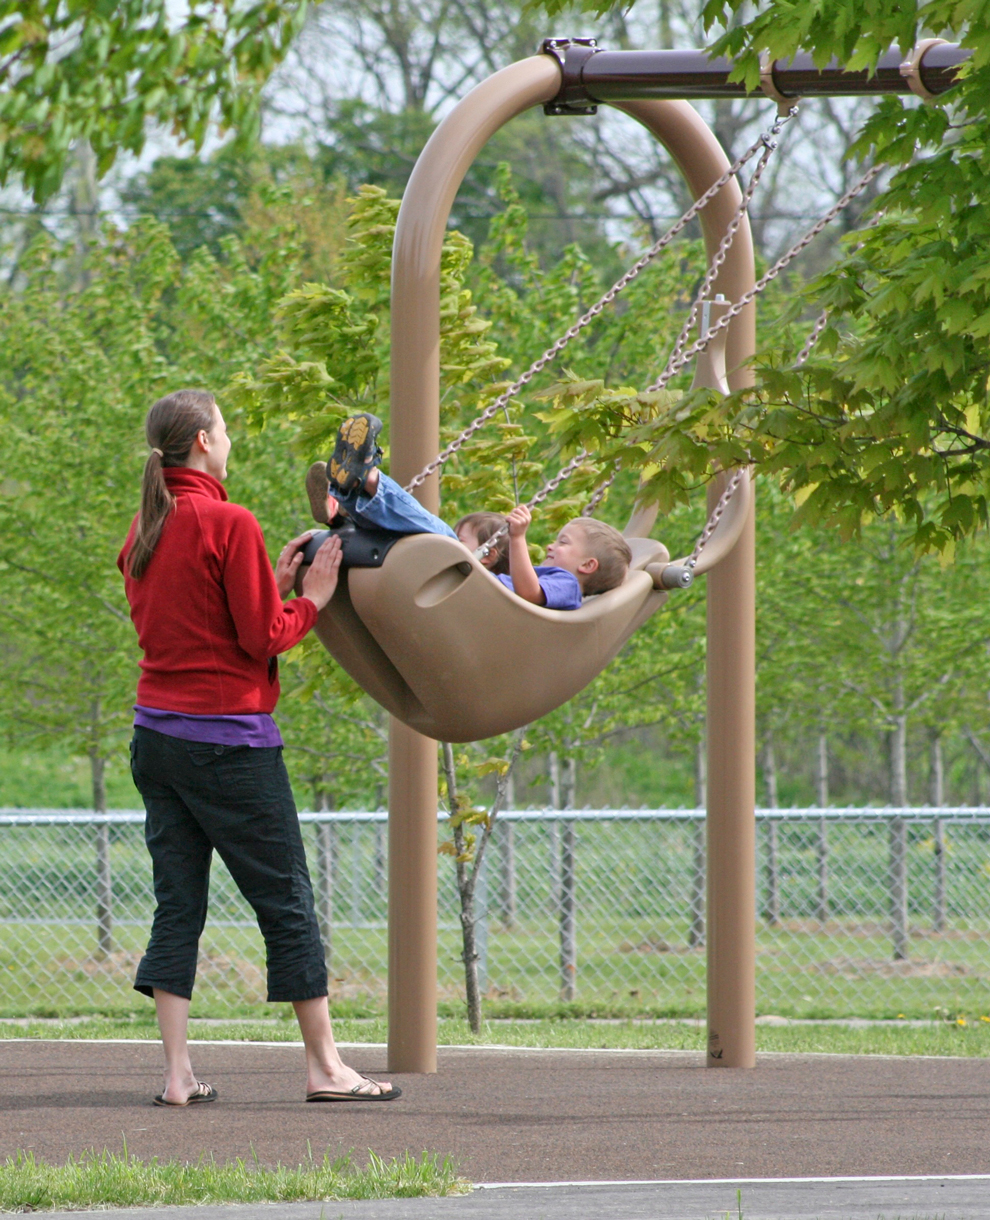 Swinging in the play area in Walnut Woods